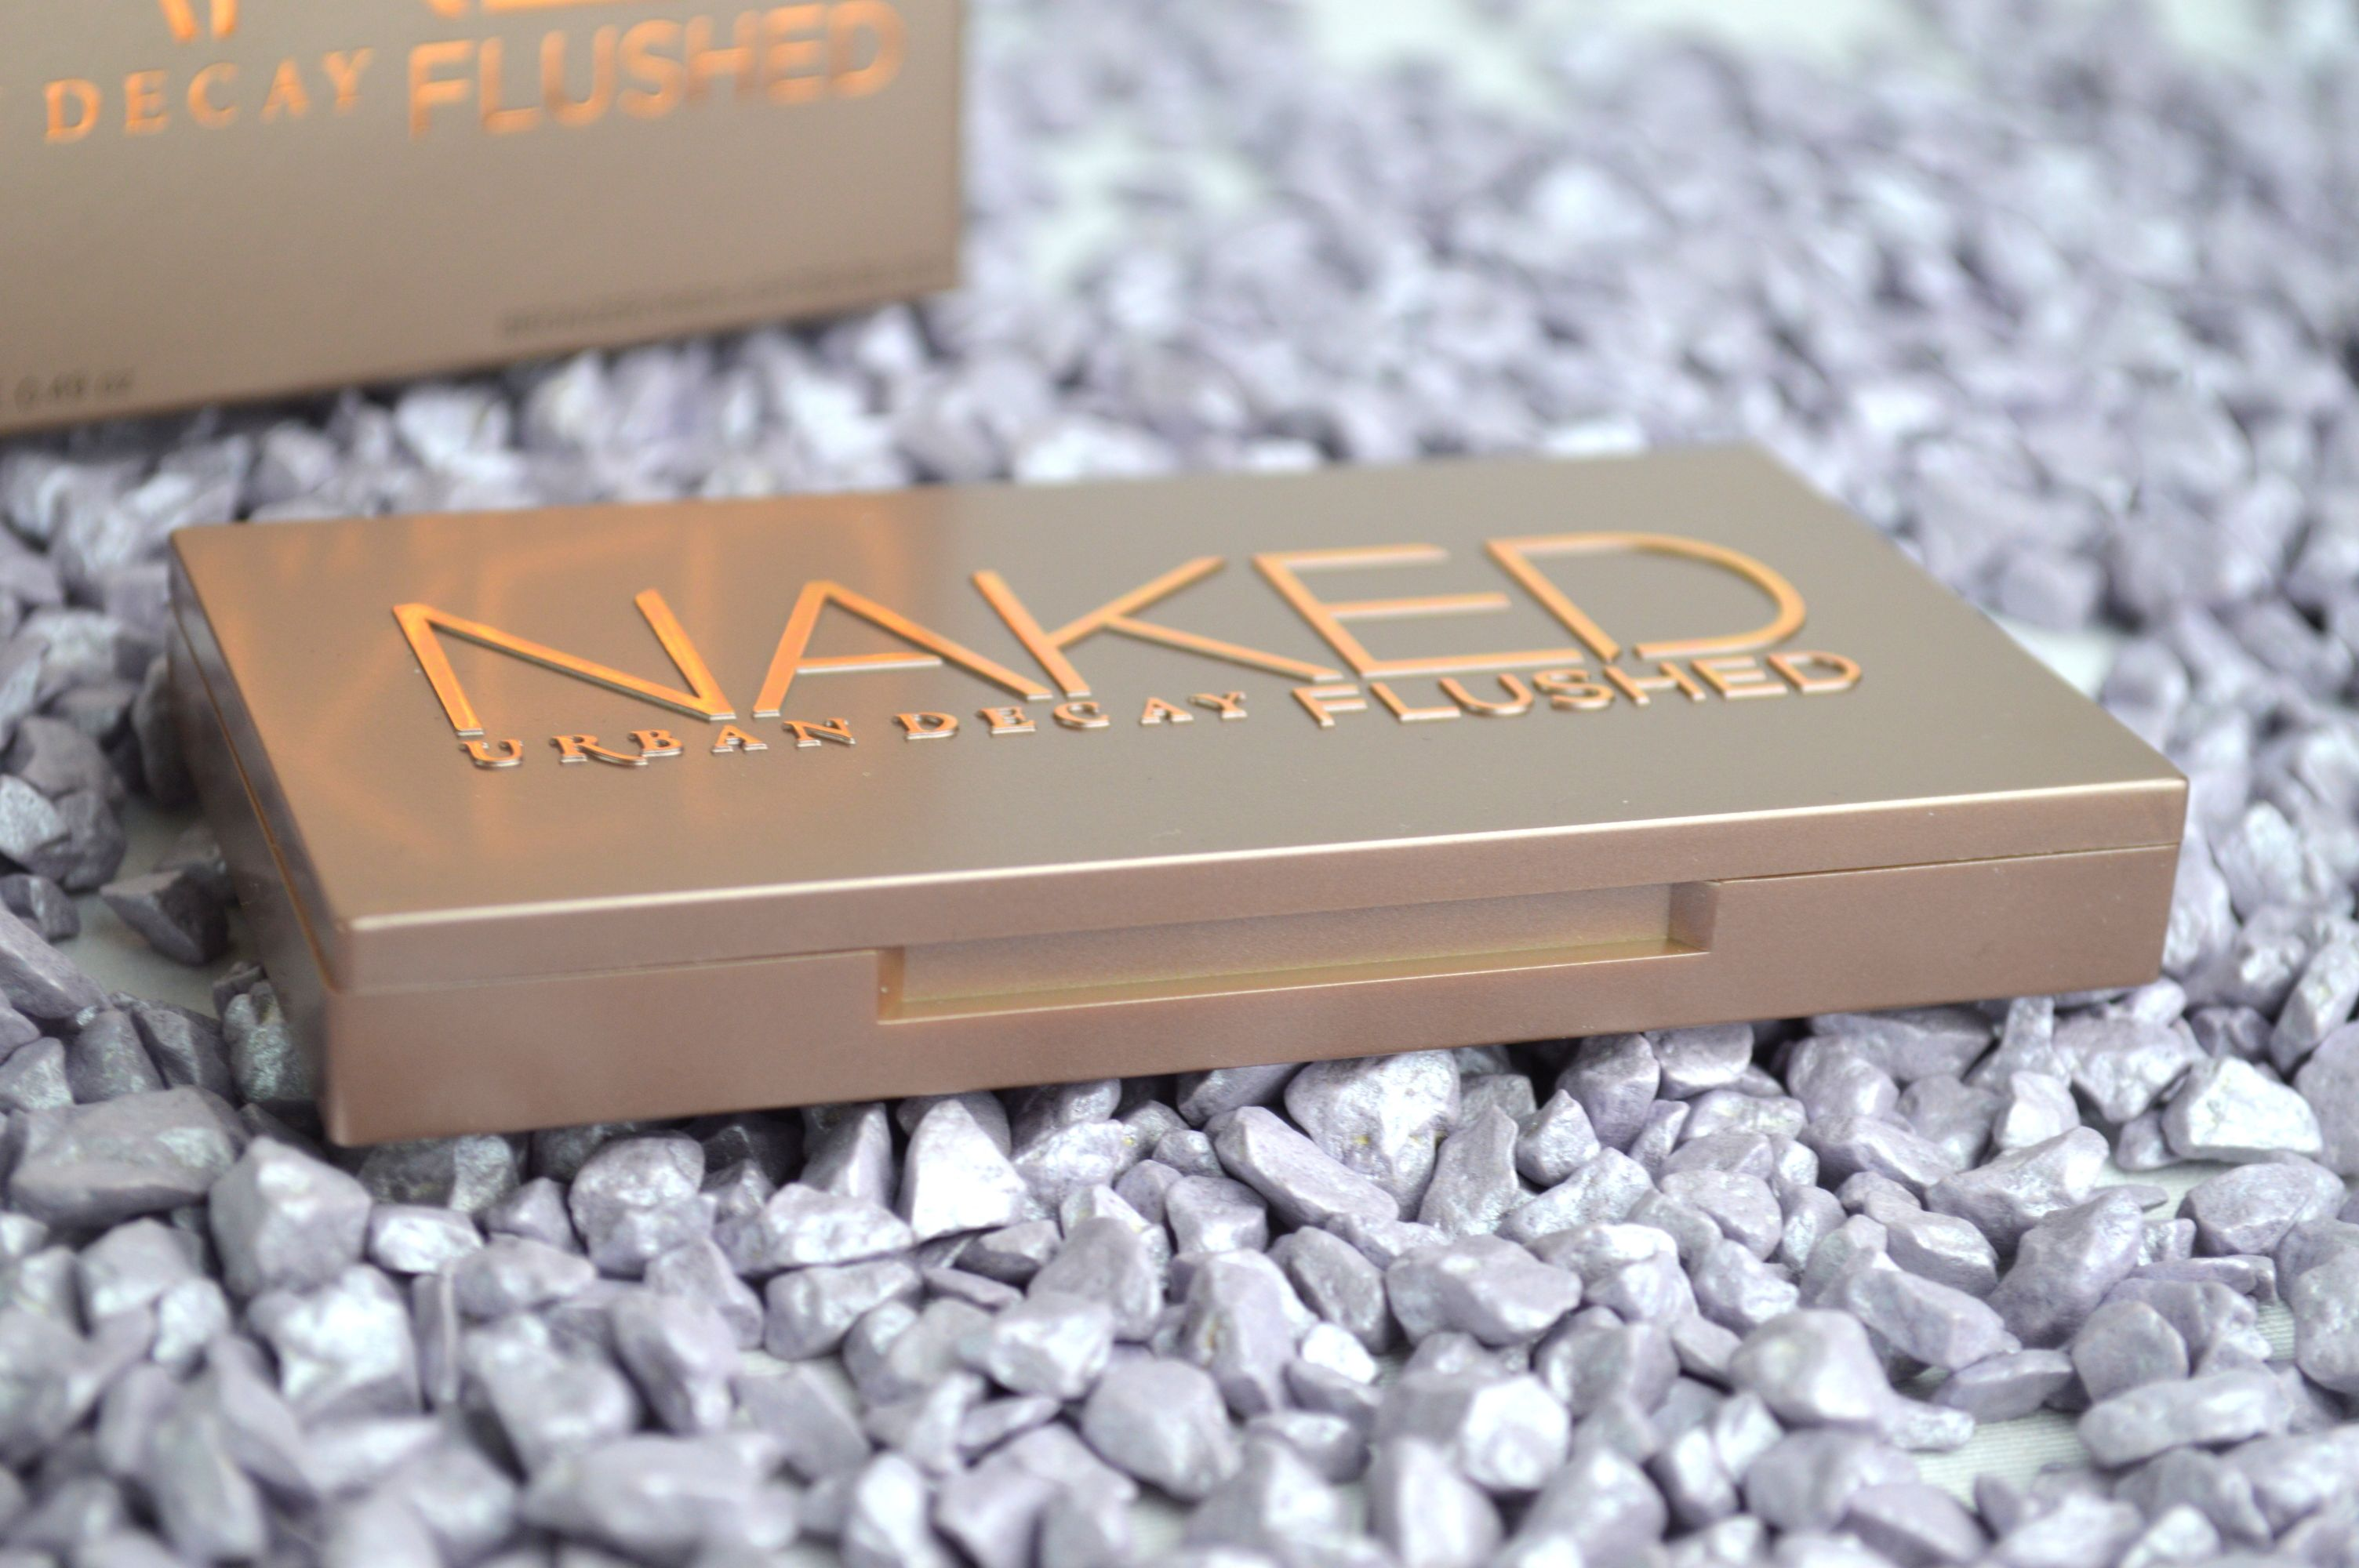 Urban_Decay_Naked_Flushed_mikalicious